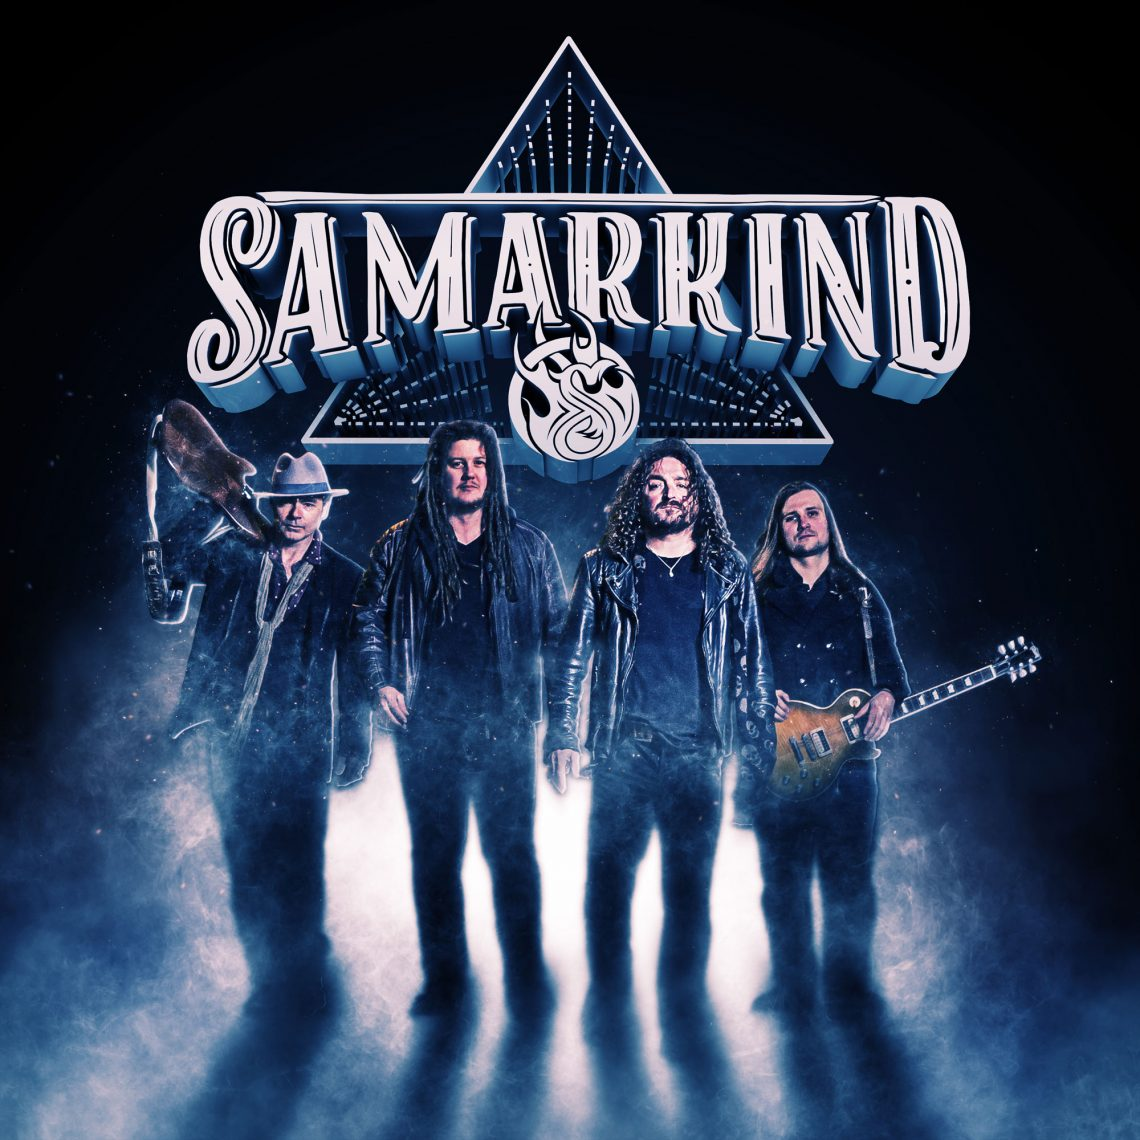 SAMARKIND ANNOUNCE DETAILS OF DEBUT ALBUM RELEASE THIS NOVEMBER